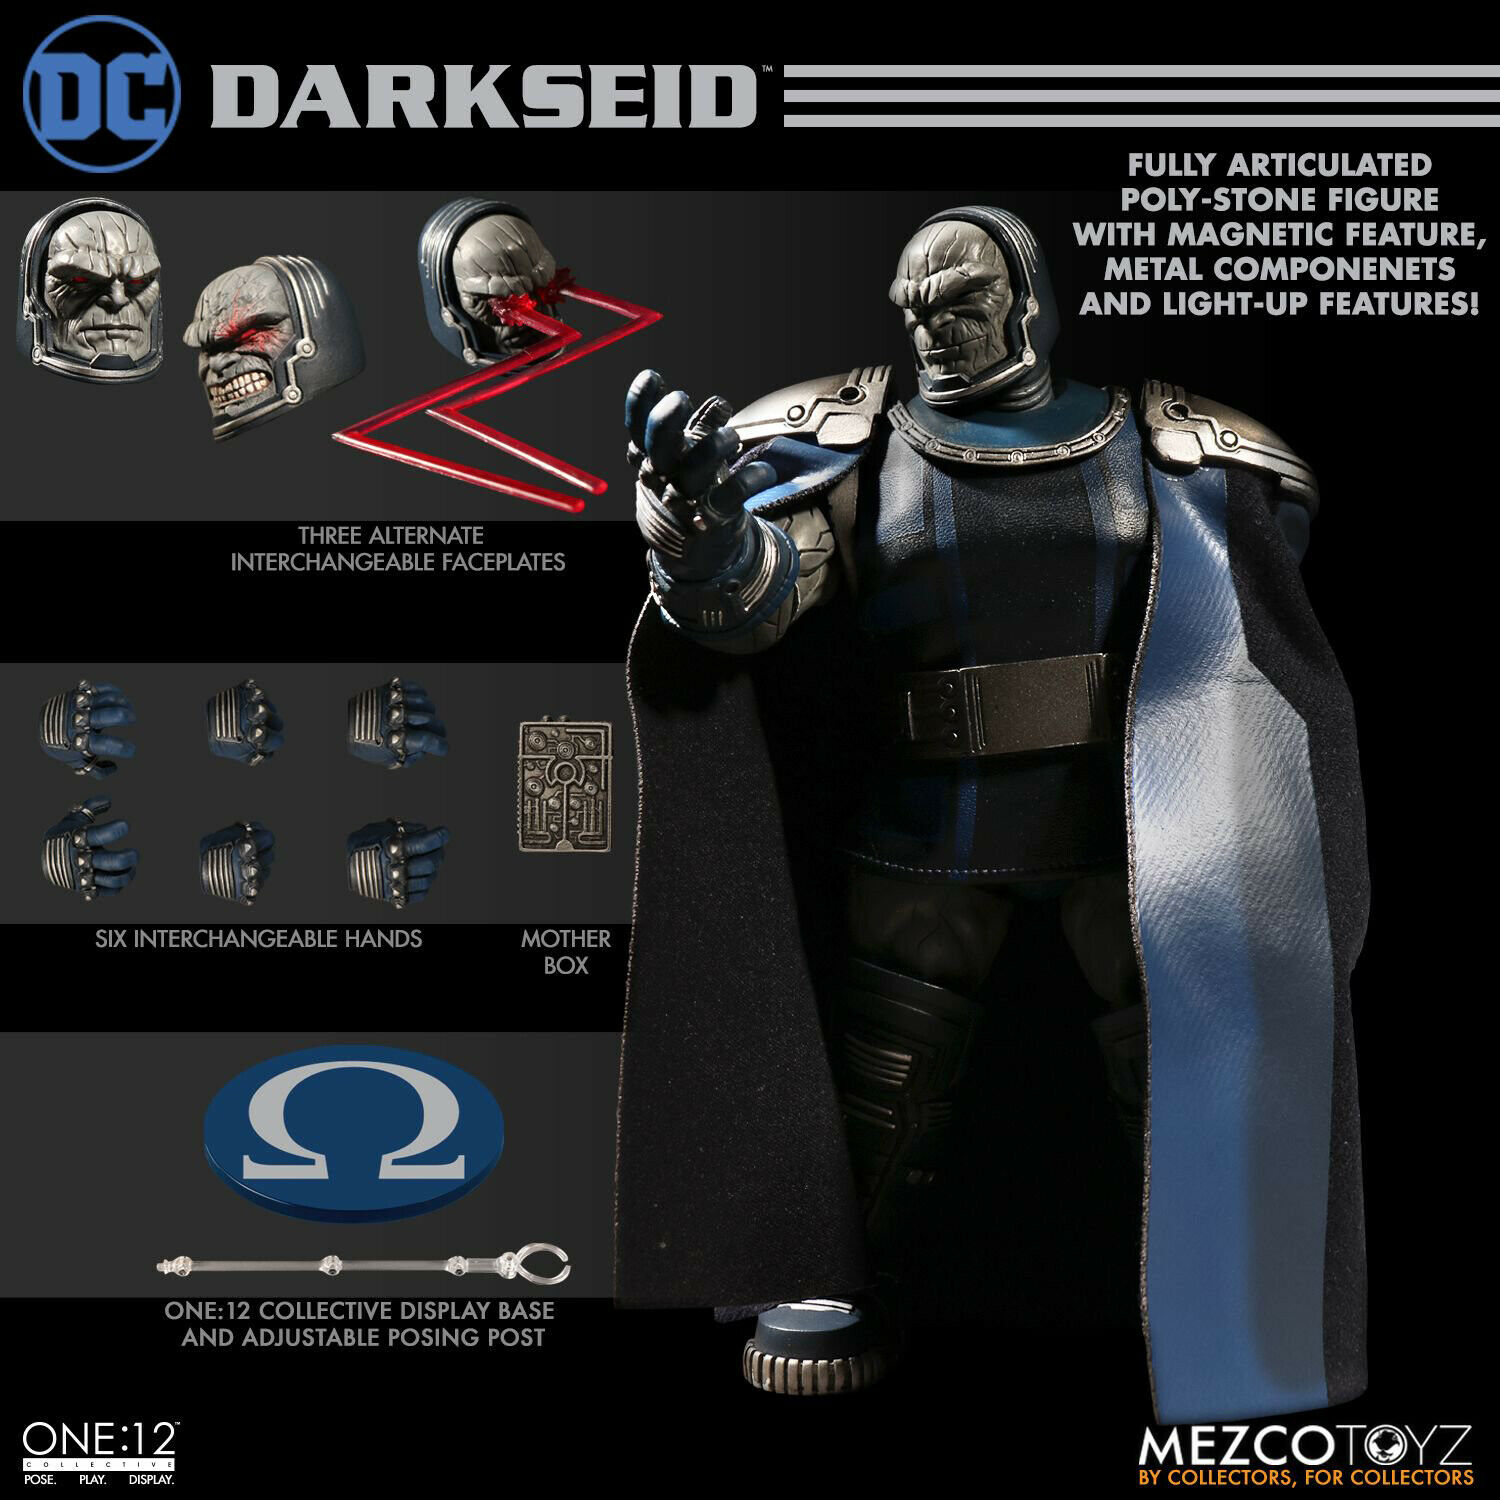 Mezco One 12 Darkseid Action Figure MINT NEW IN BOX